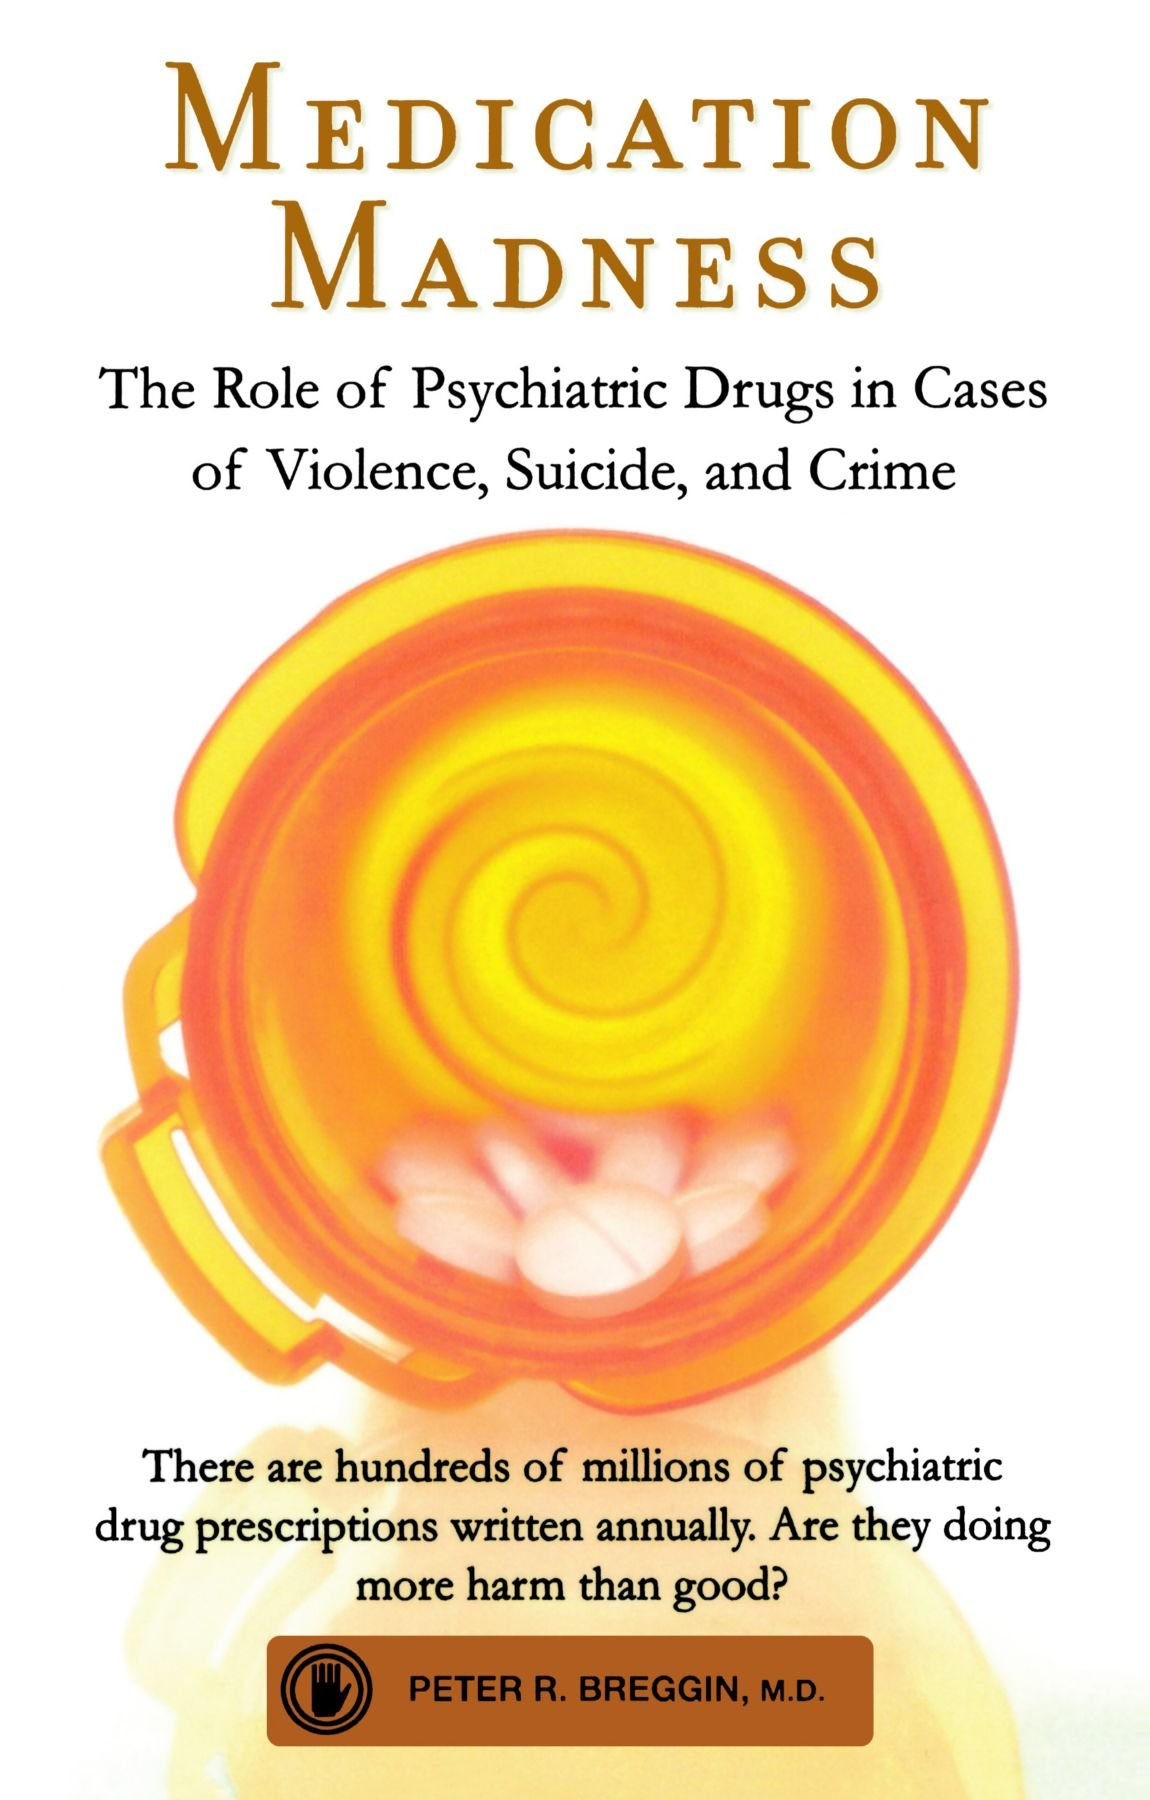 Breggin, Peter. Medication Madness: The Role of Psychiatric Drugs in Cases of Violence, Suicide, and Crime